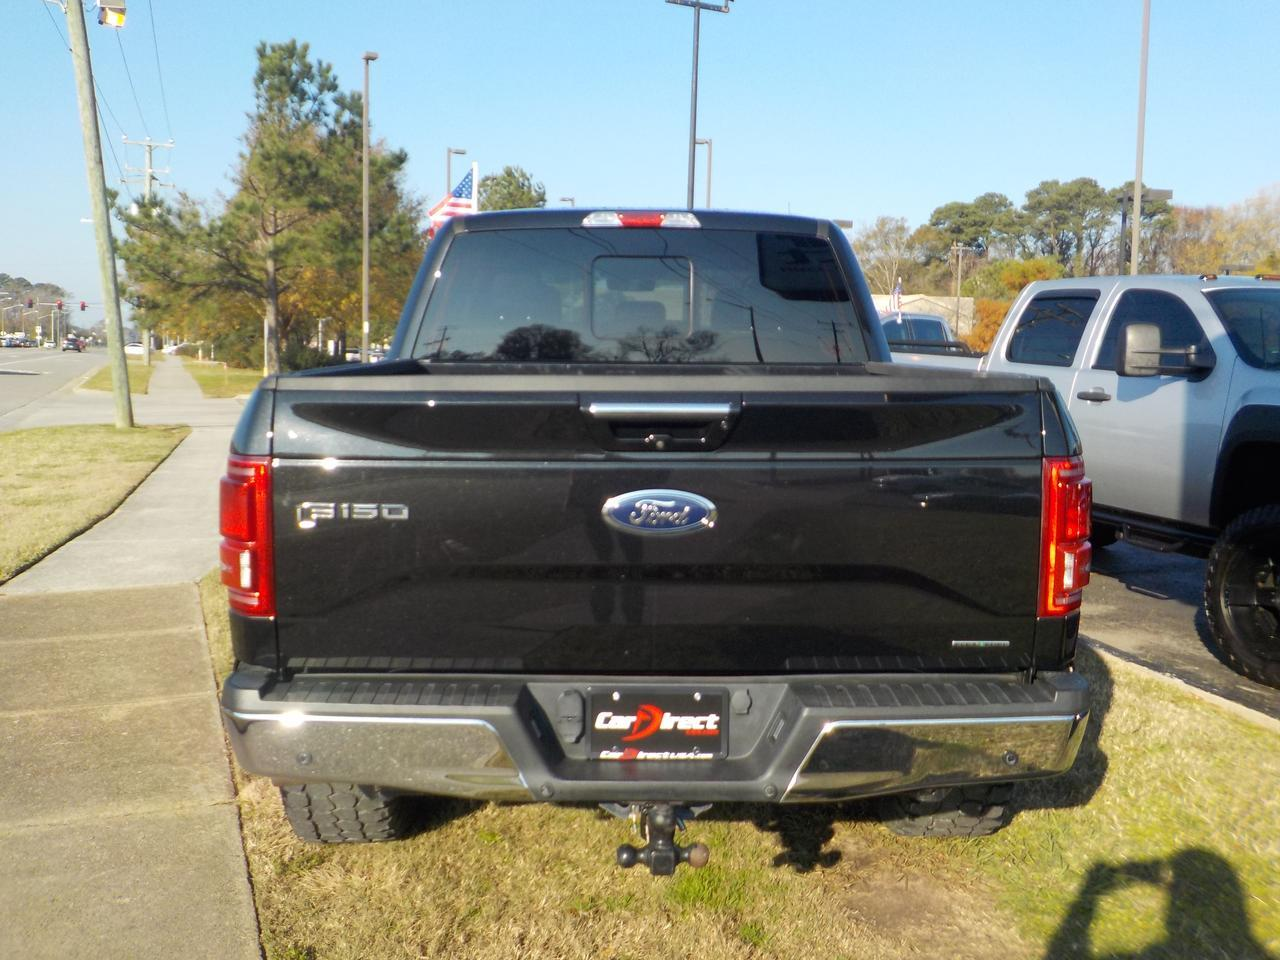 2015 FORD F-150 LARIAT SUPERCREW 4X4, LEATHER, CUSTOM GEAR RIMS, TOW PACKAGE, REMOTE START, BACKUP CAMERA! Virginia Beach VA